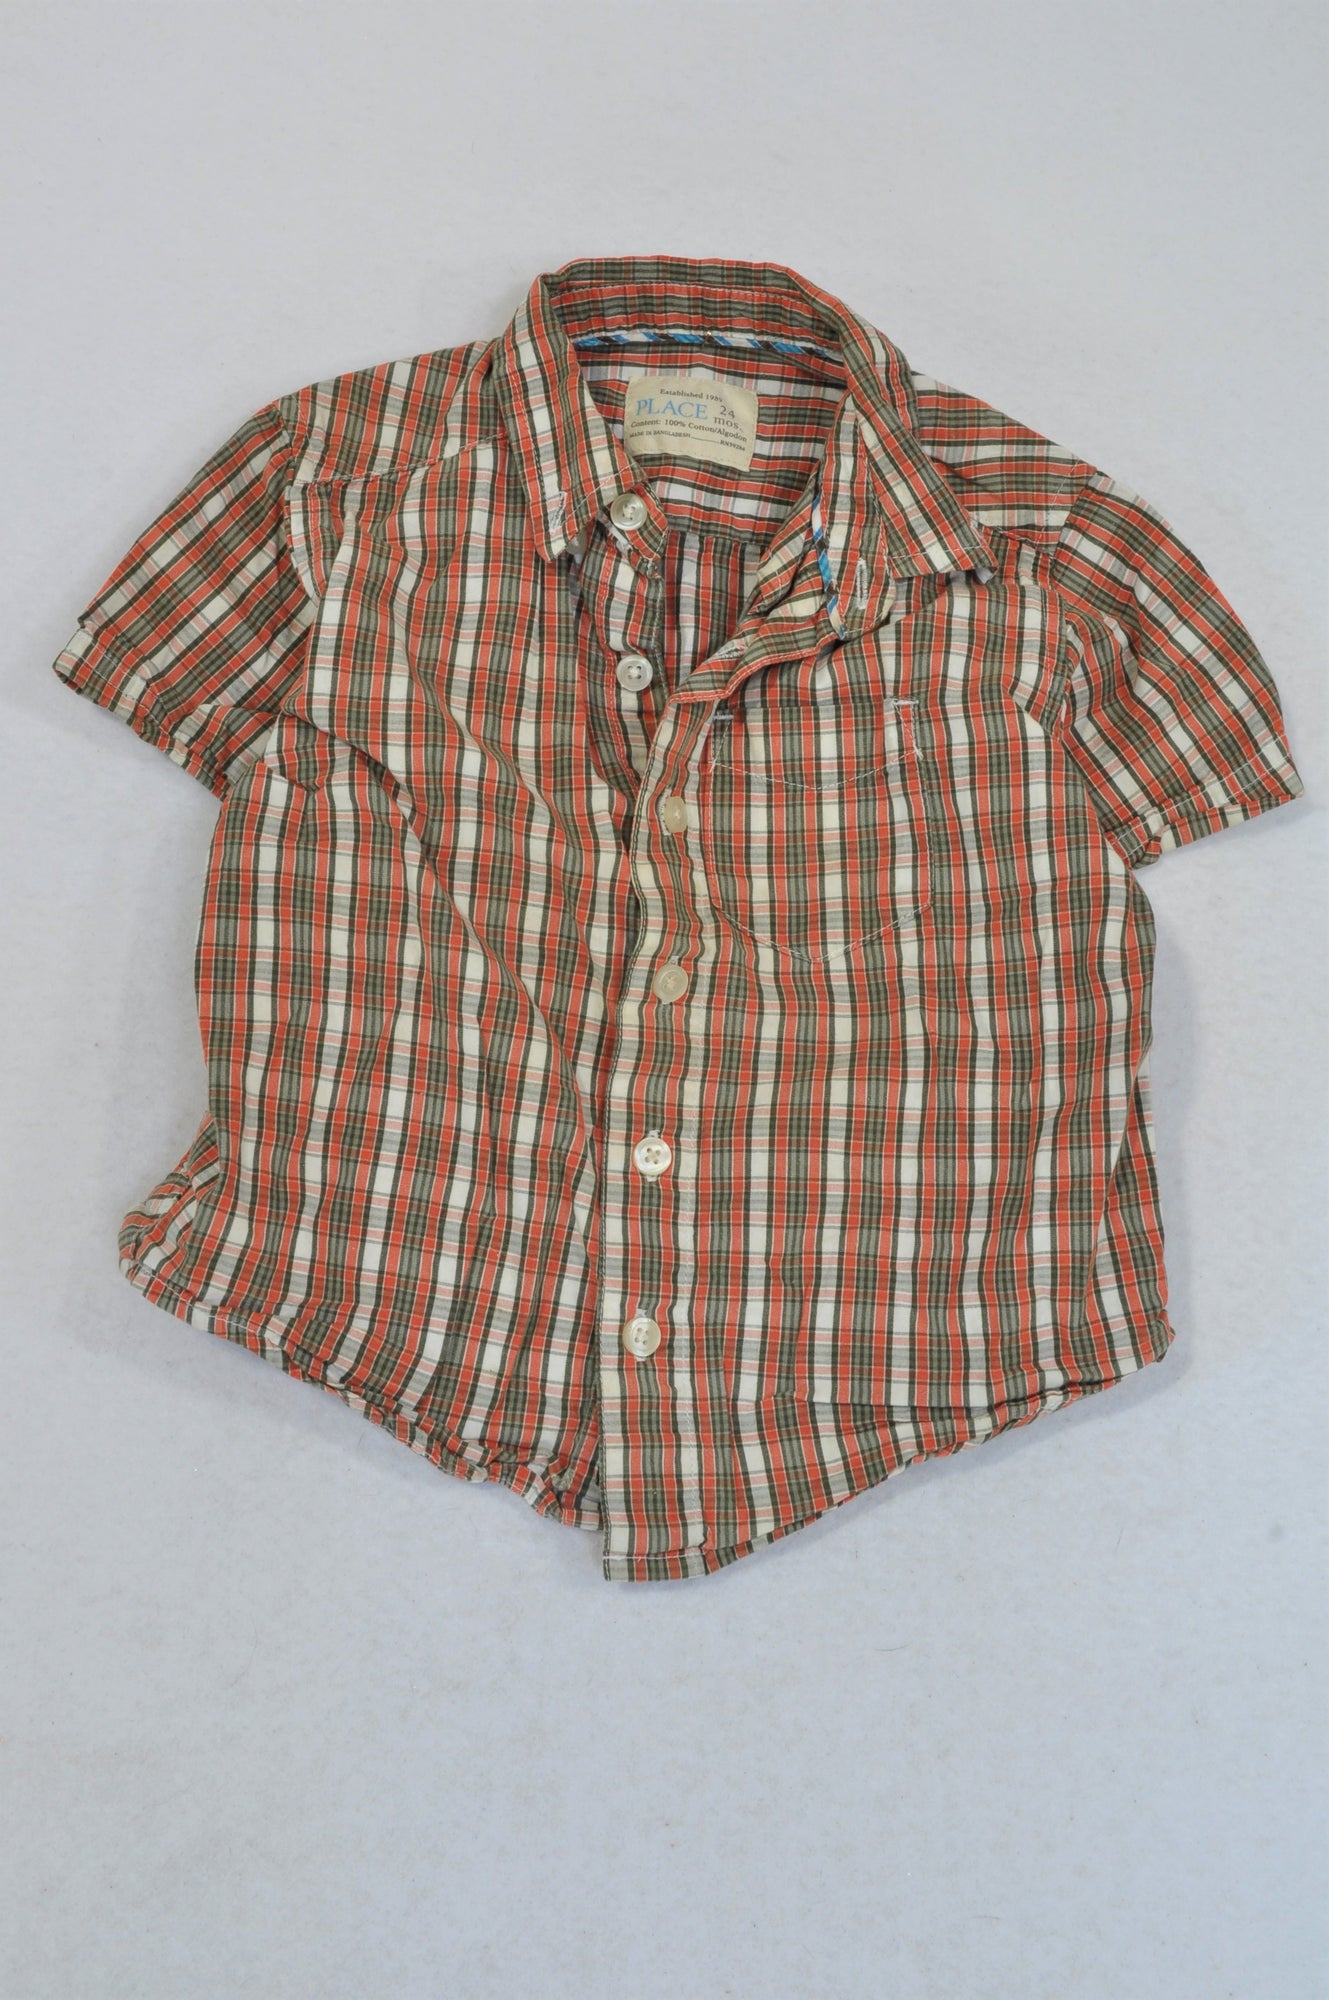 PLACE Olive & Orange Check Button Shirt Boys 18-24 months